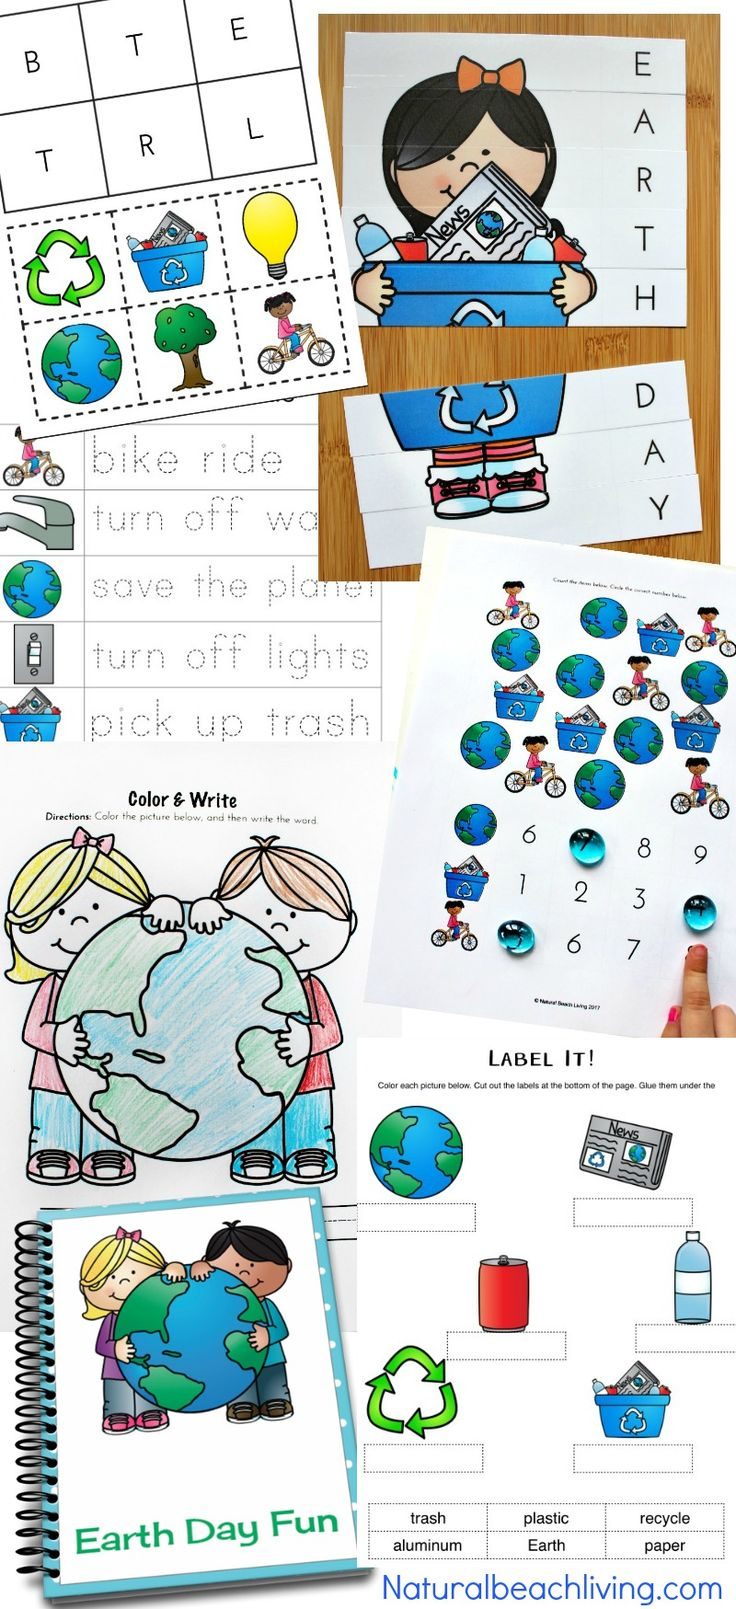 Earth Day Activities Preschool & Kindergarteners Love, Free Earth Day Printables, Recycling activities, Coloring pages, Alphabet puzzles, Fine motor work